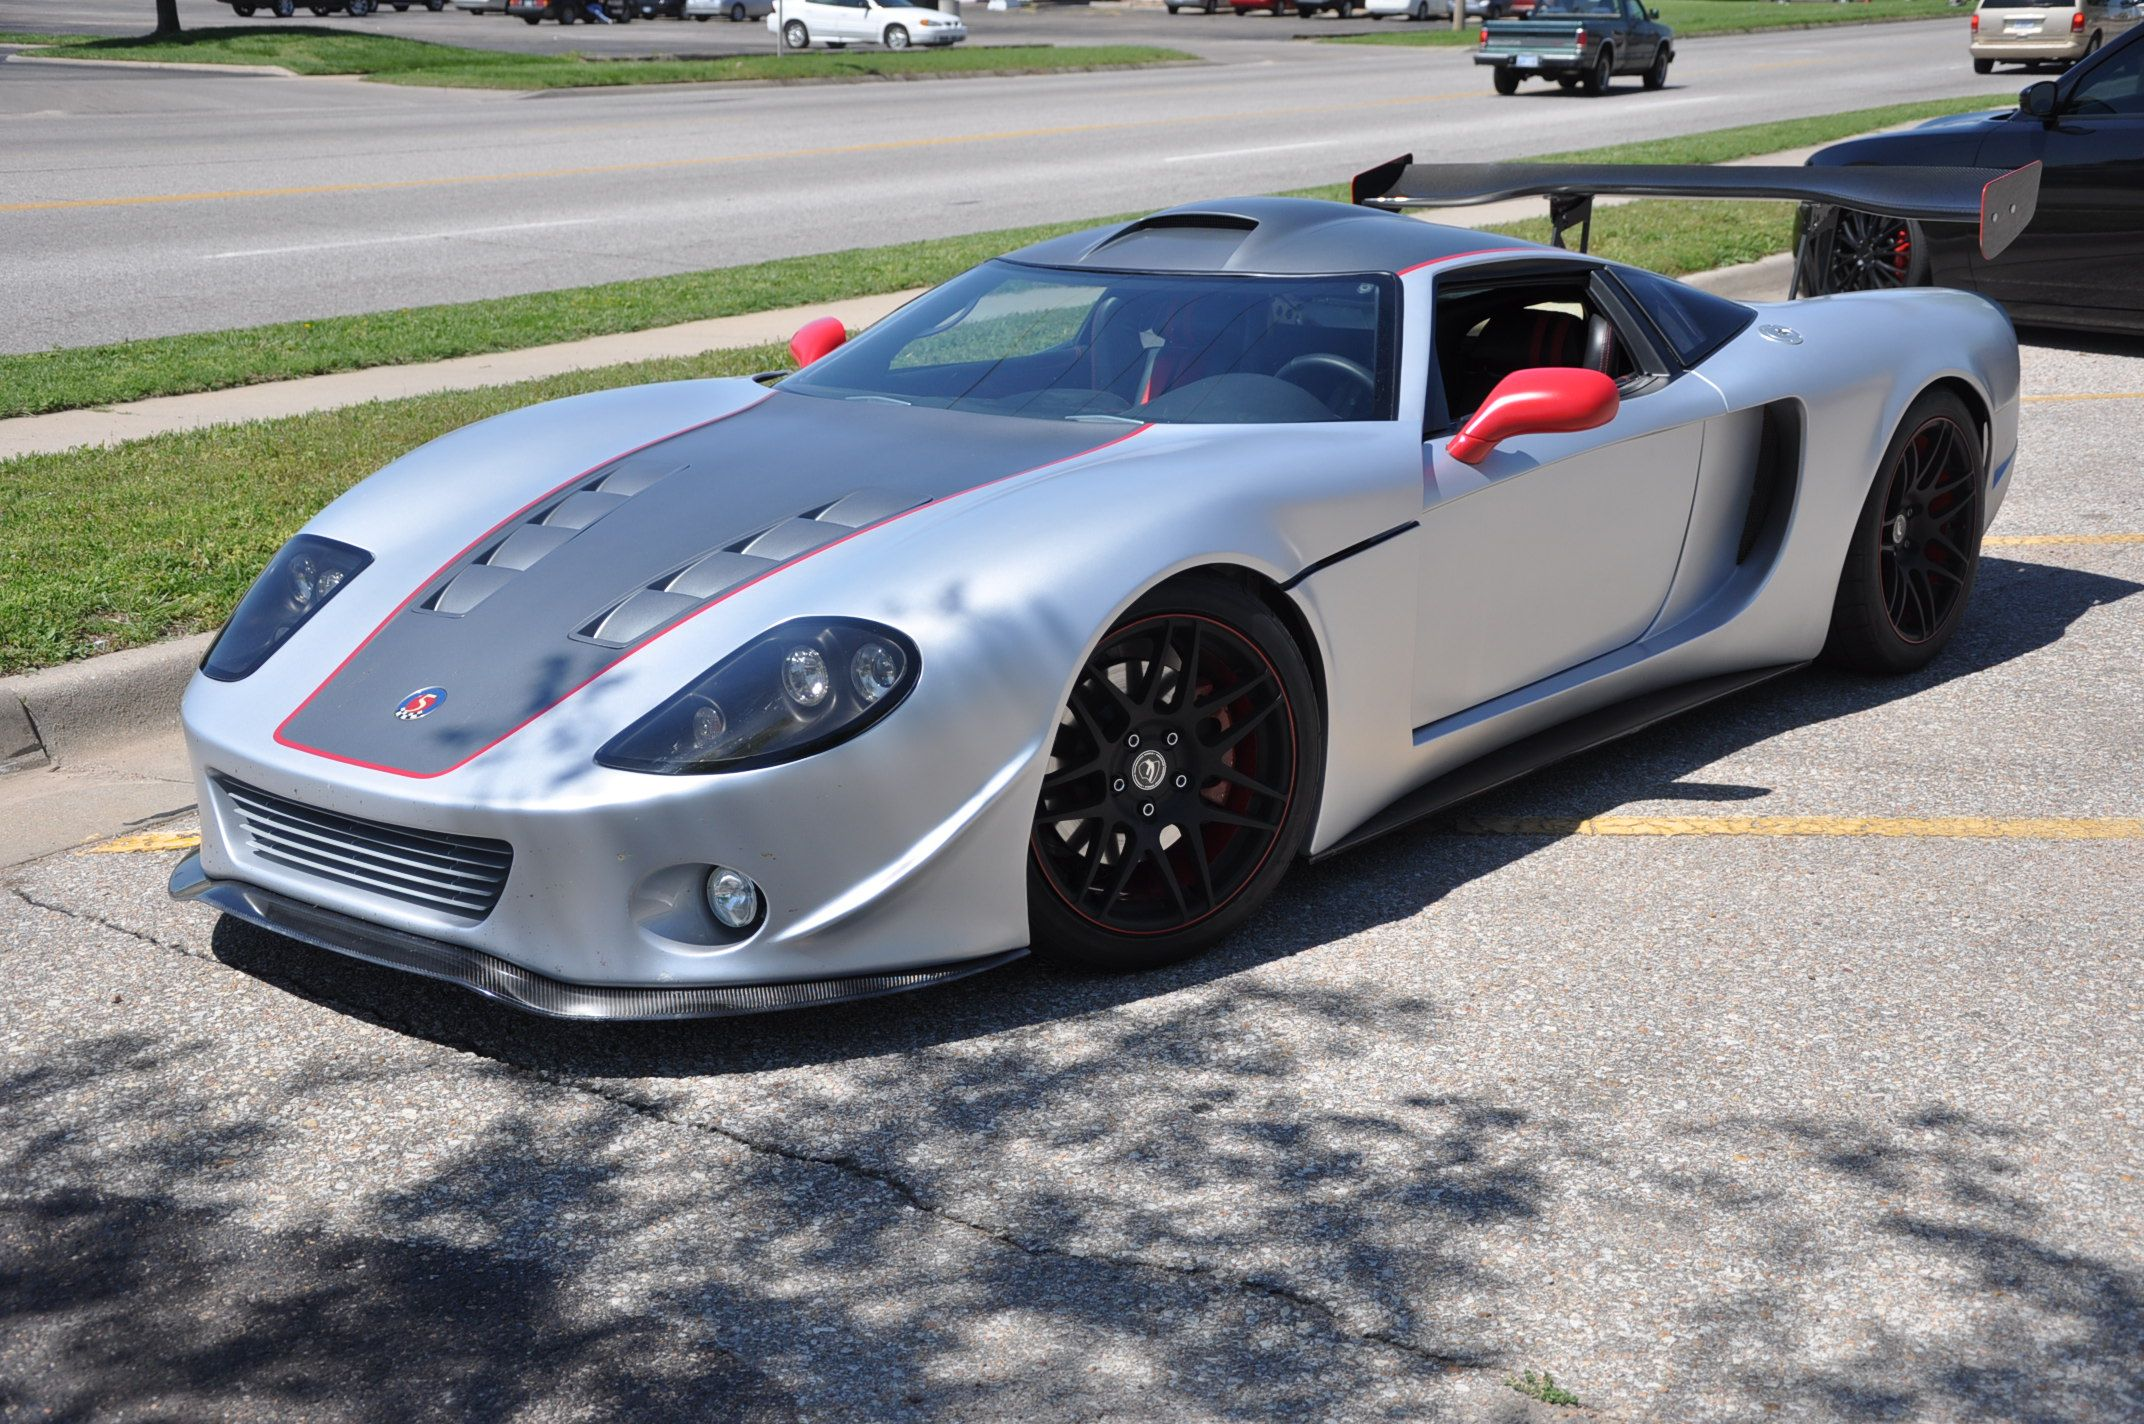 For Sale Gtm Supercar Coupe With Body Modification